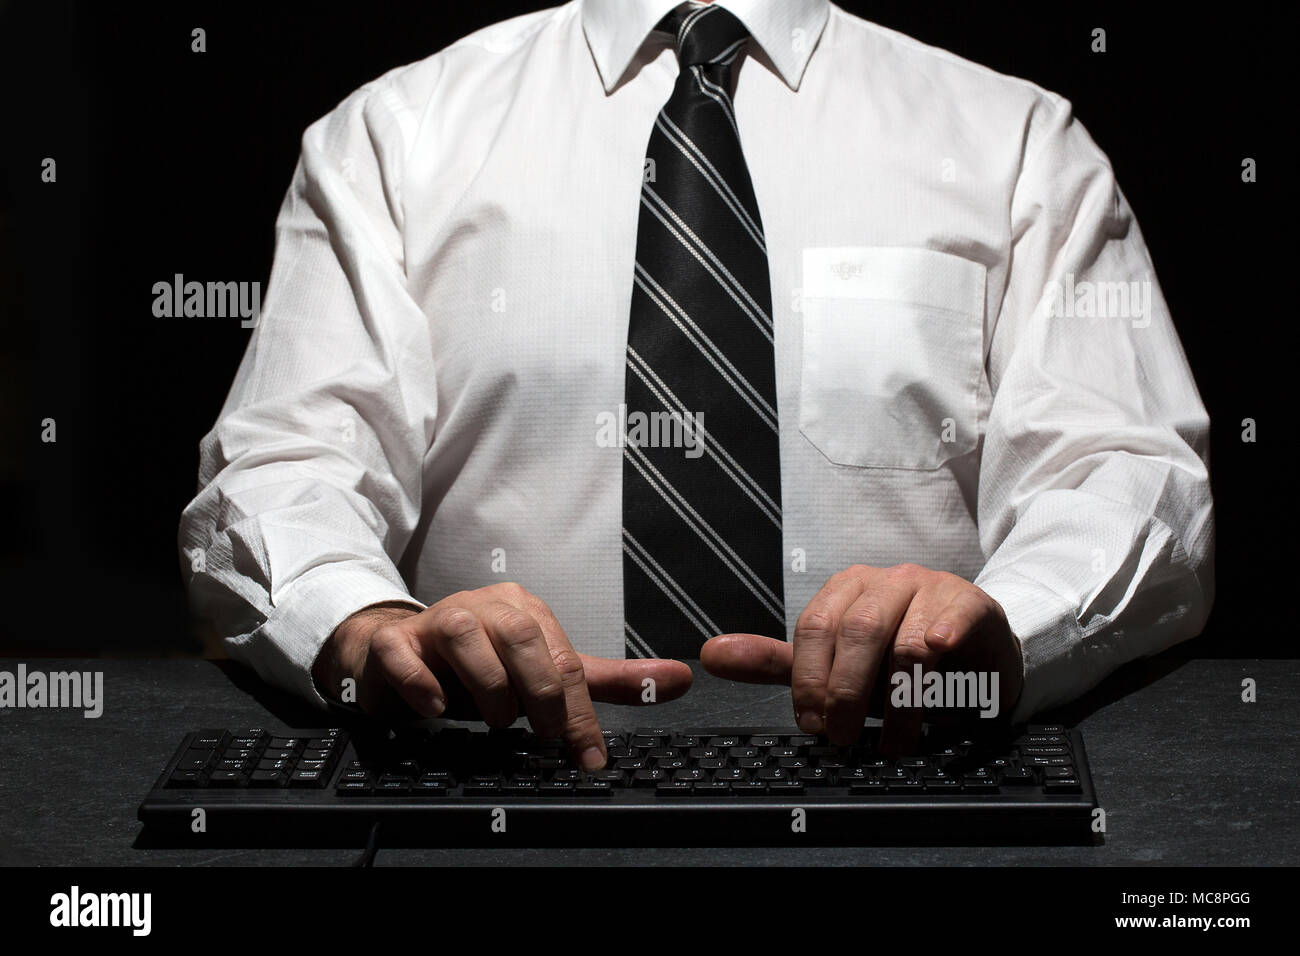 man wearing white shirt with black tie has stripes on it while typing - Stock Image